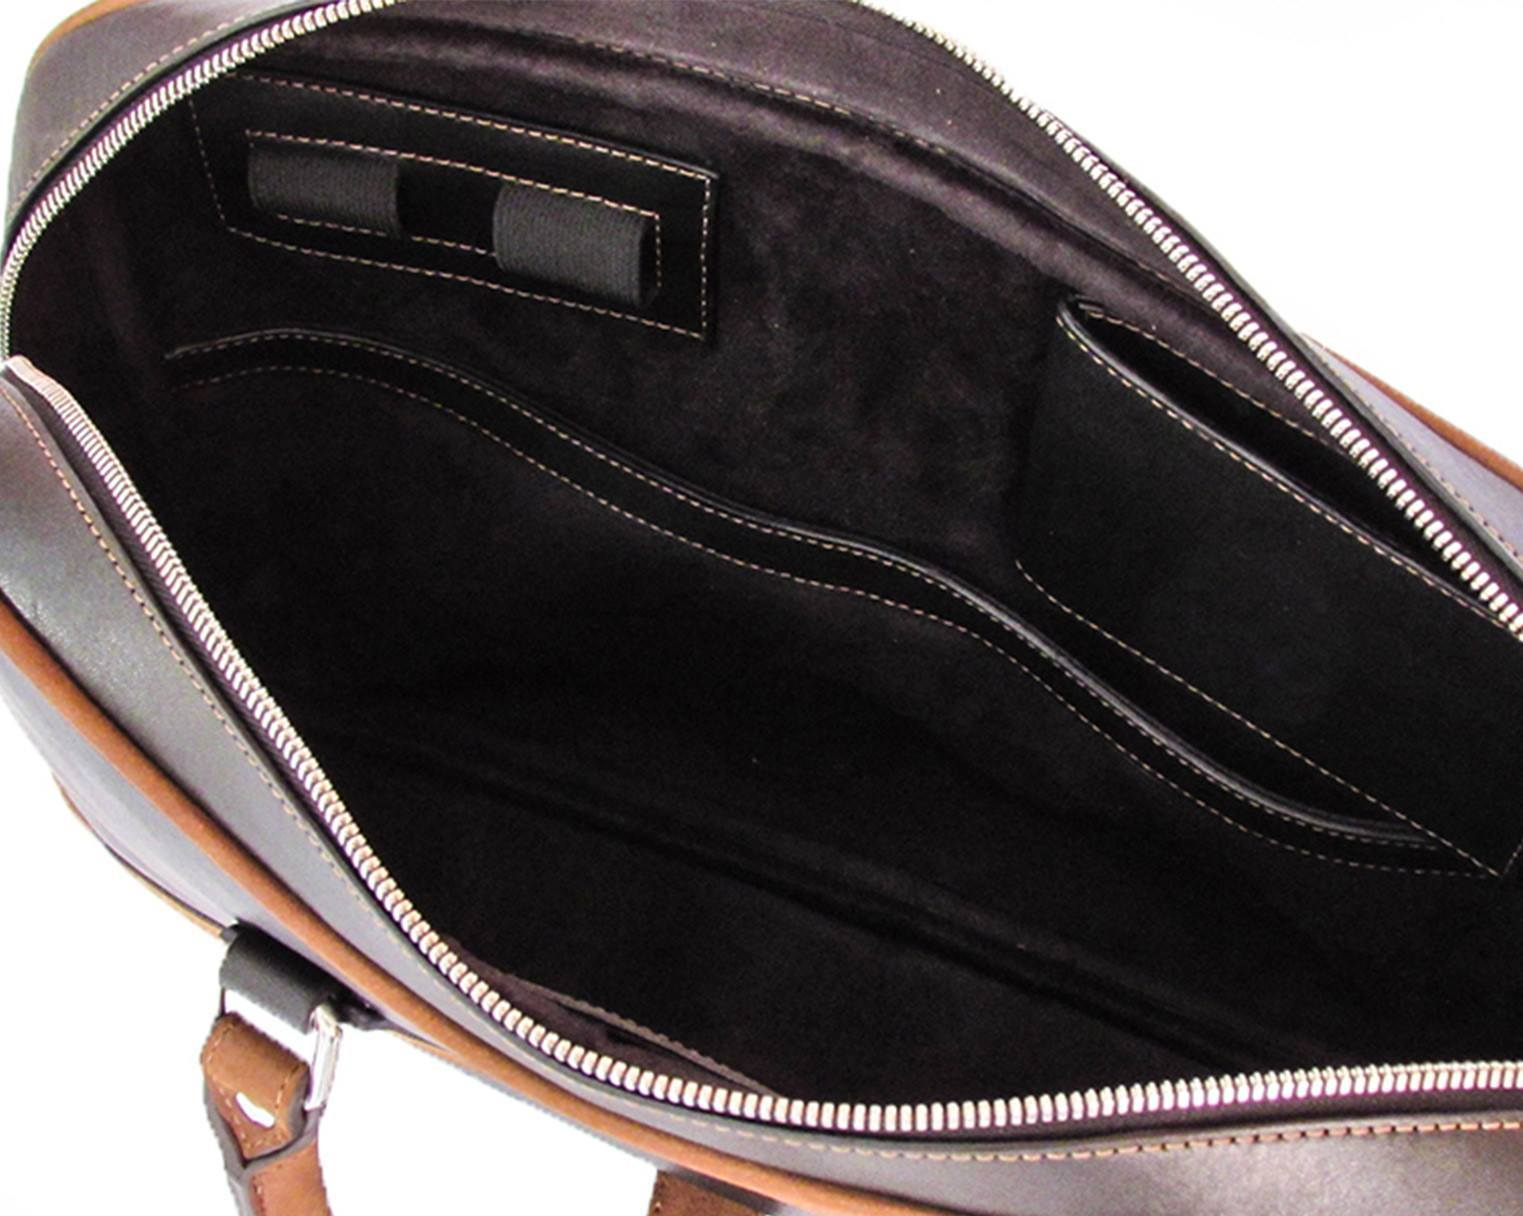 "KANZEK's laptop leather briefcase interior is made of a suede-like lining and fits a 15"" laptop"